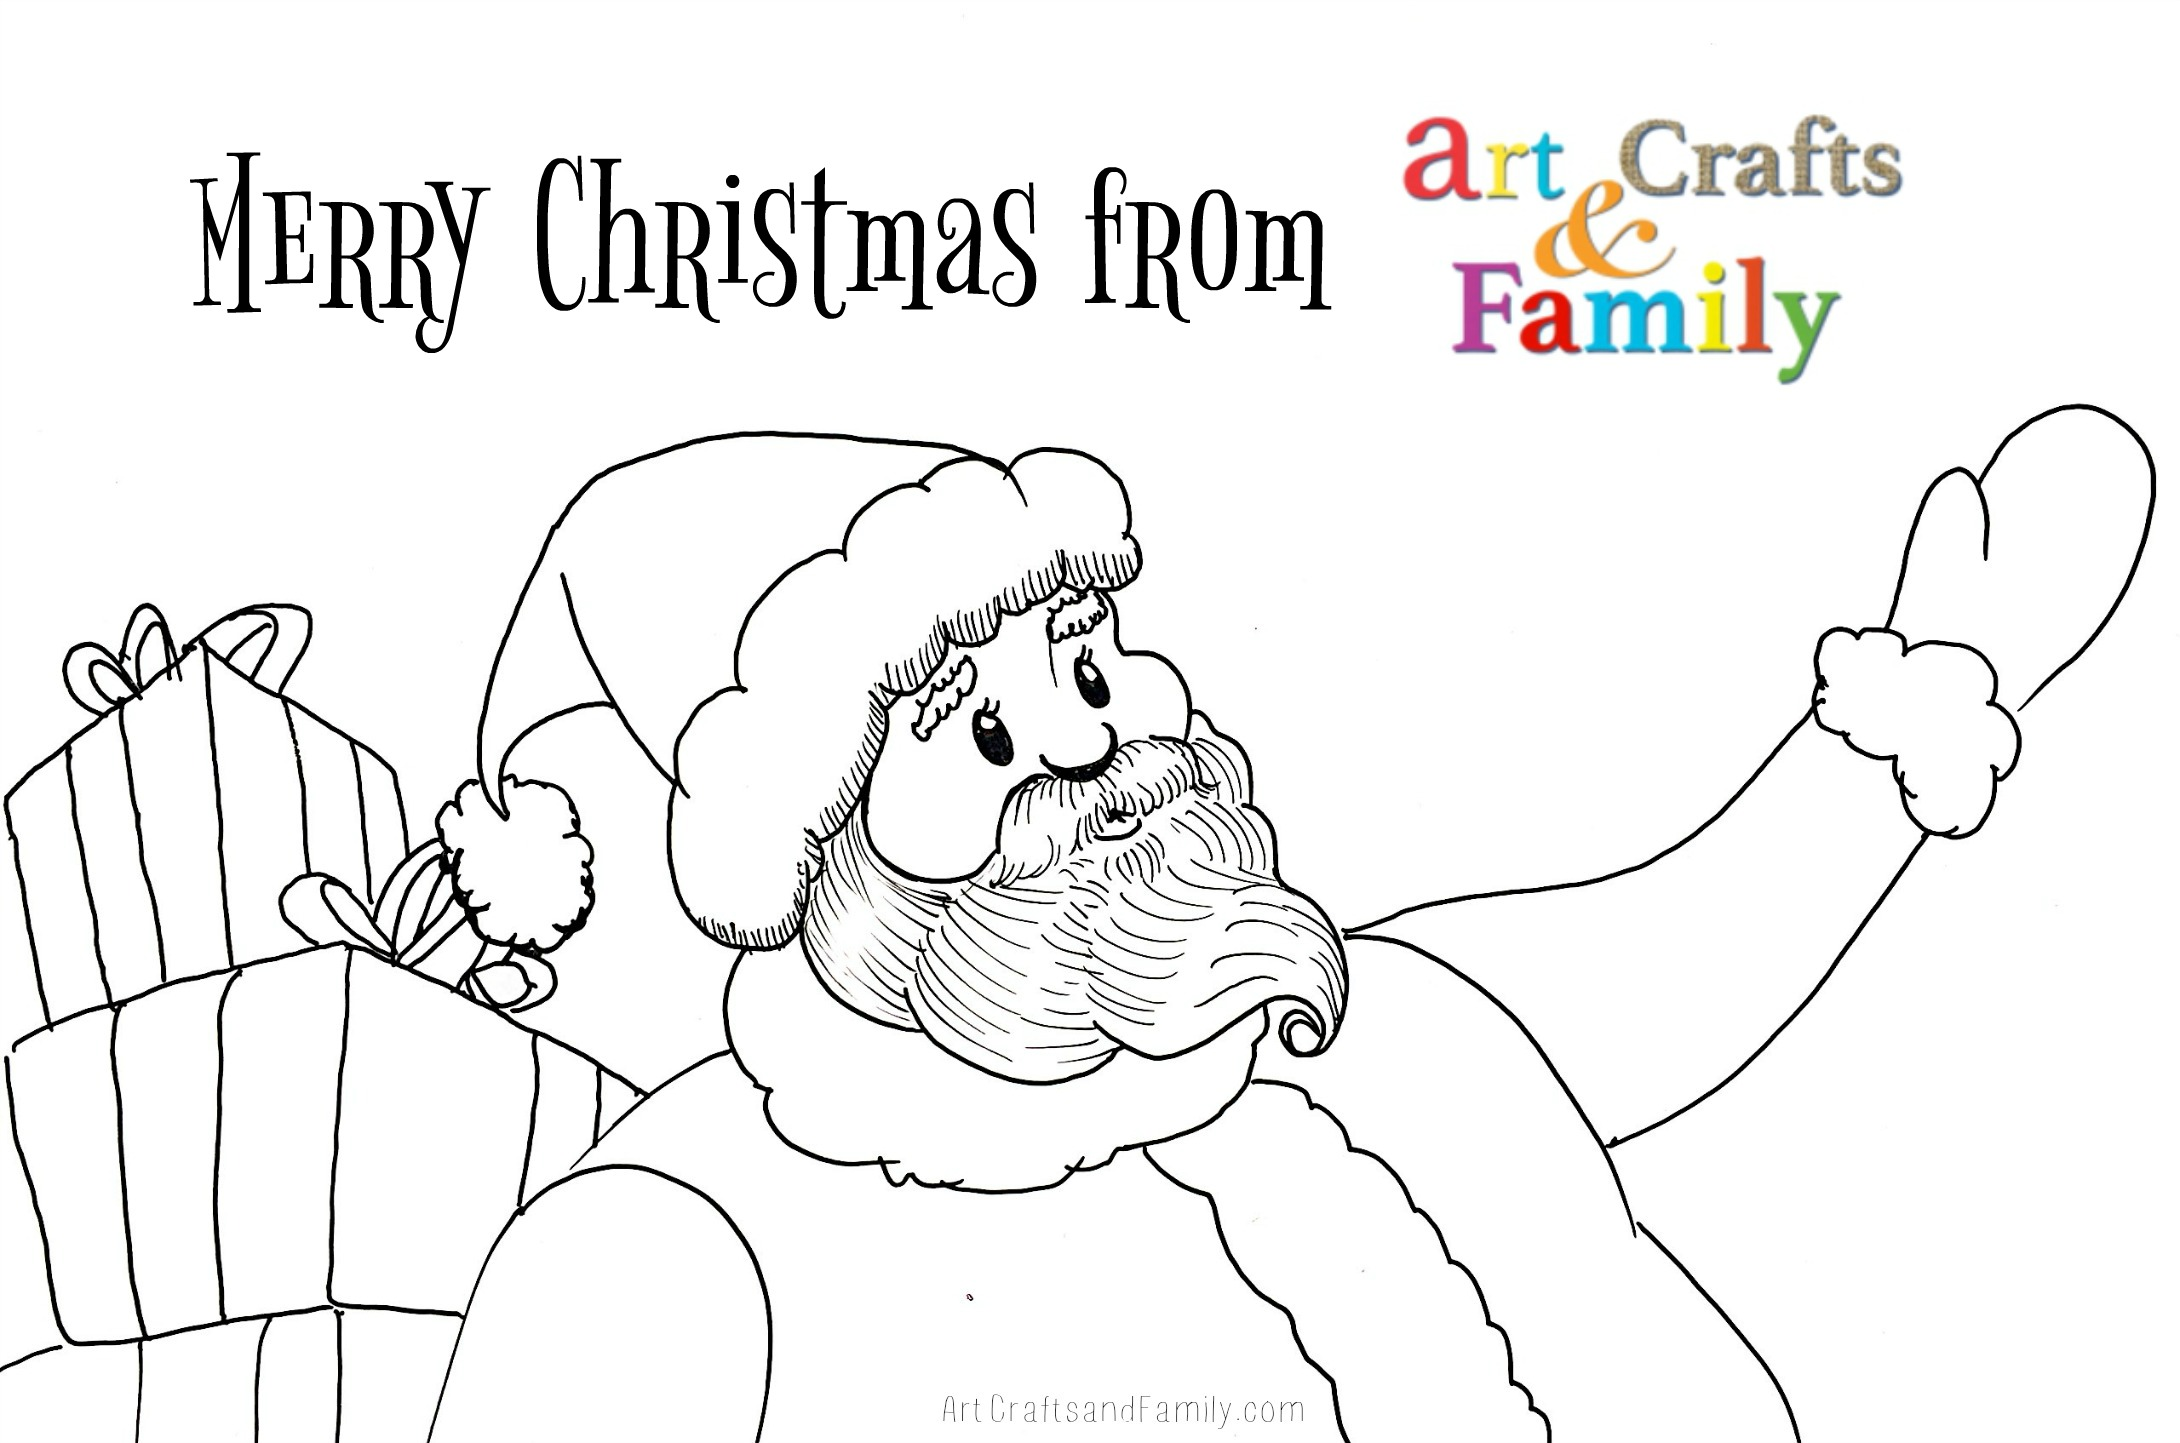 photograph relating to Free Printable Christmas Art titled No cost Printable Xmas Coloring Internet pages - Artwork Crafts Household